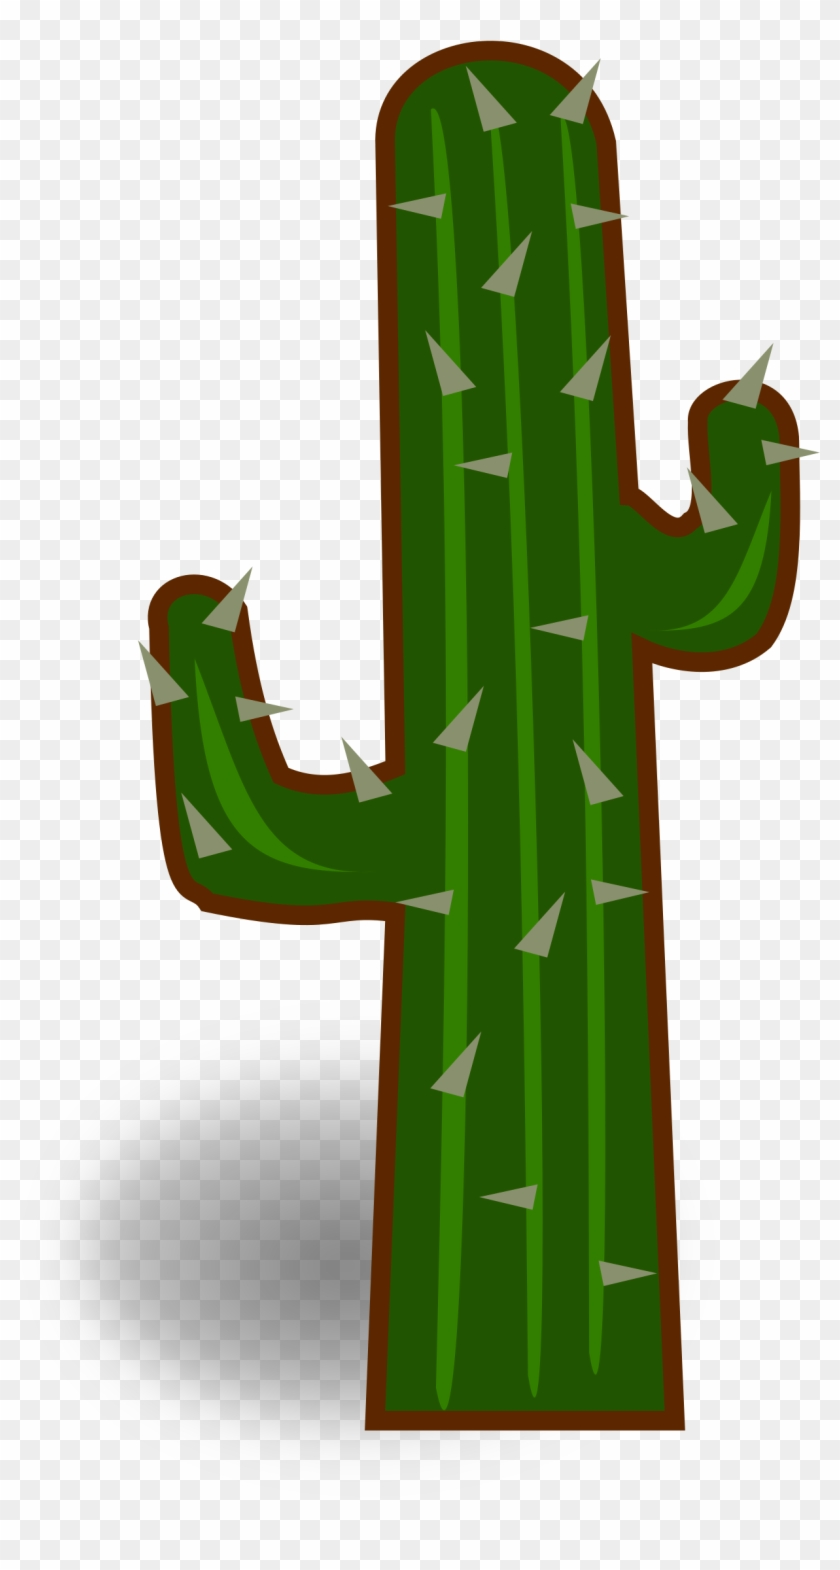 Clipart For Cactus - Cactus Png #41437